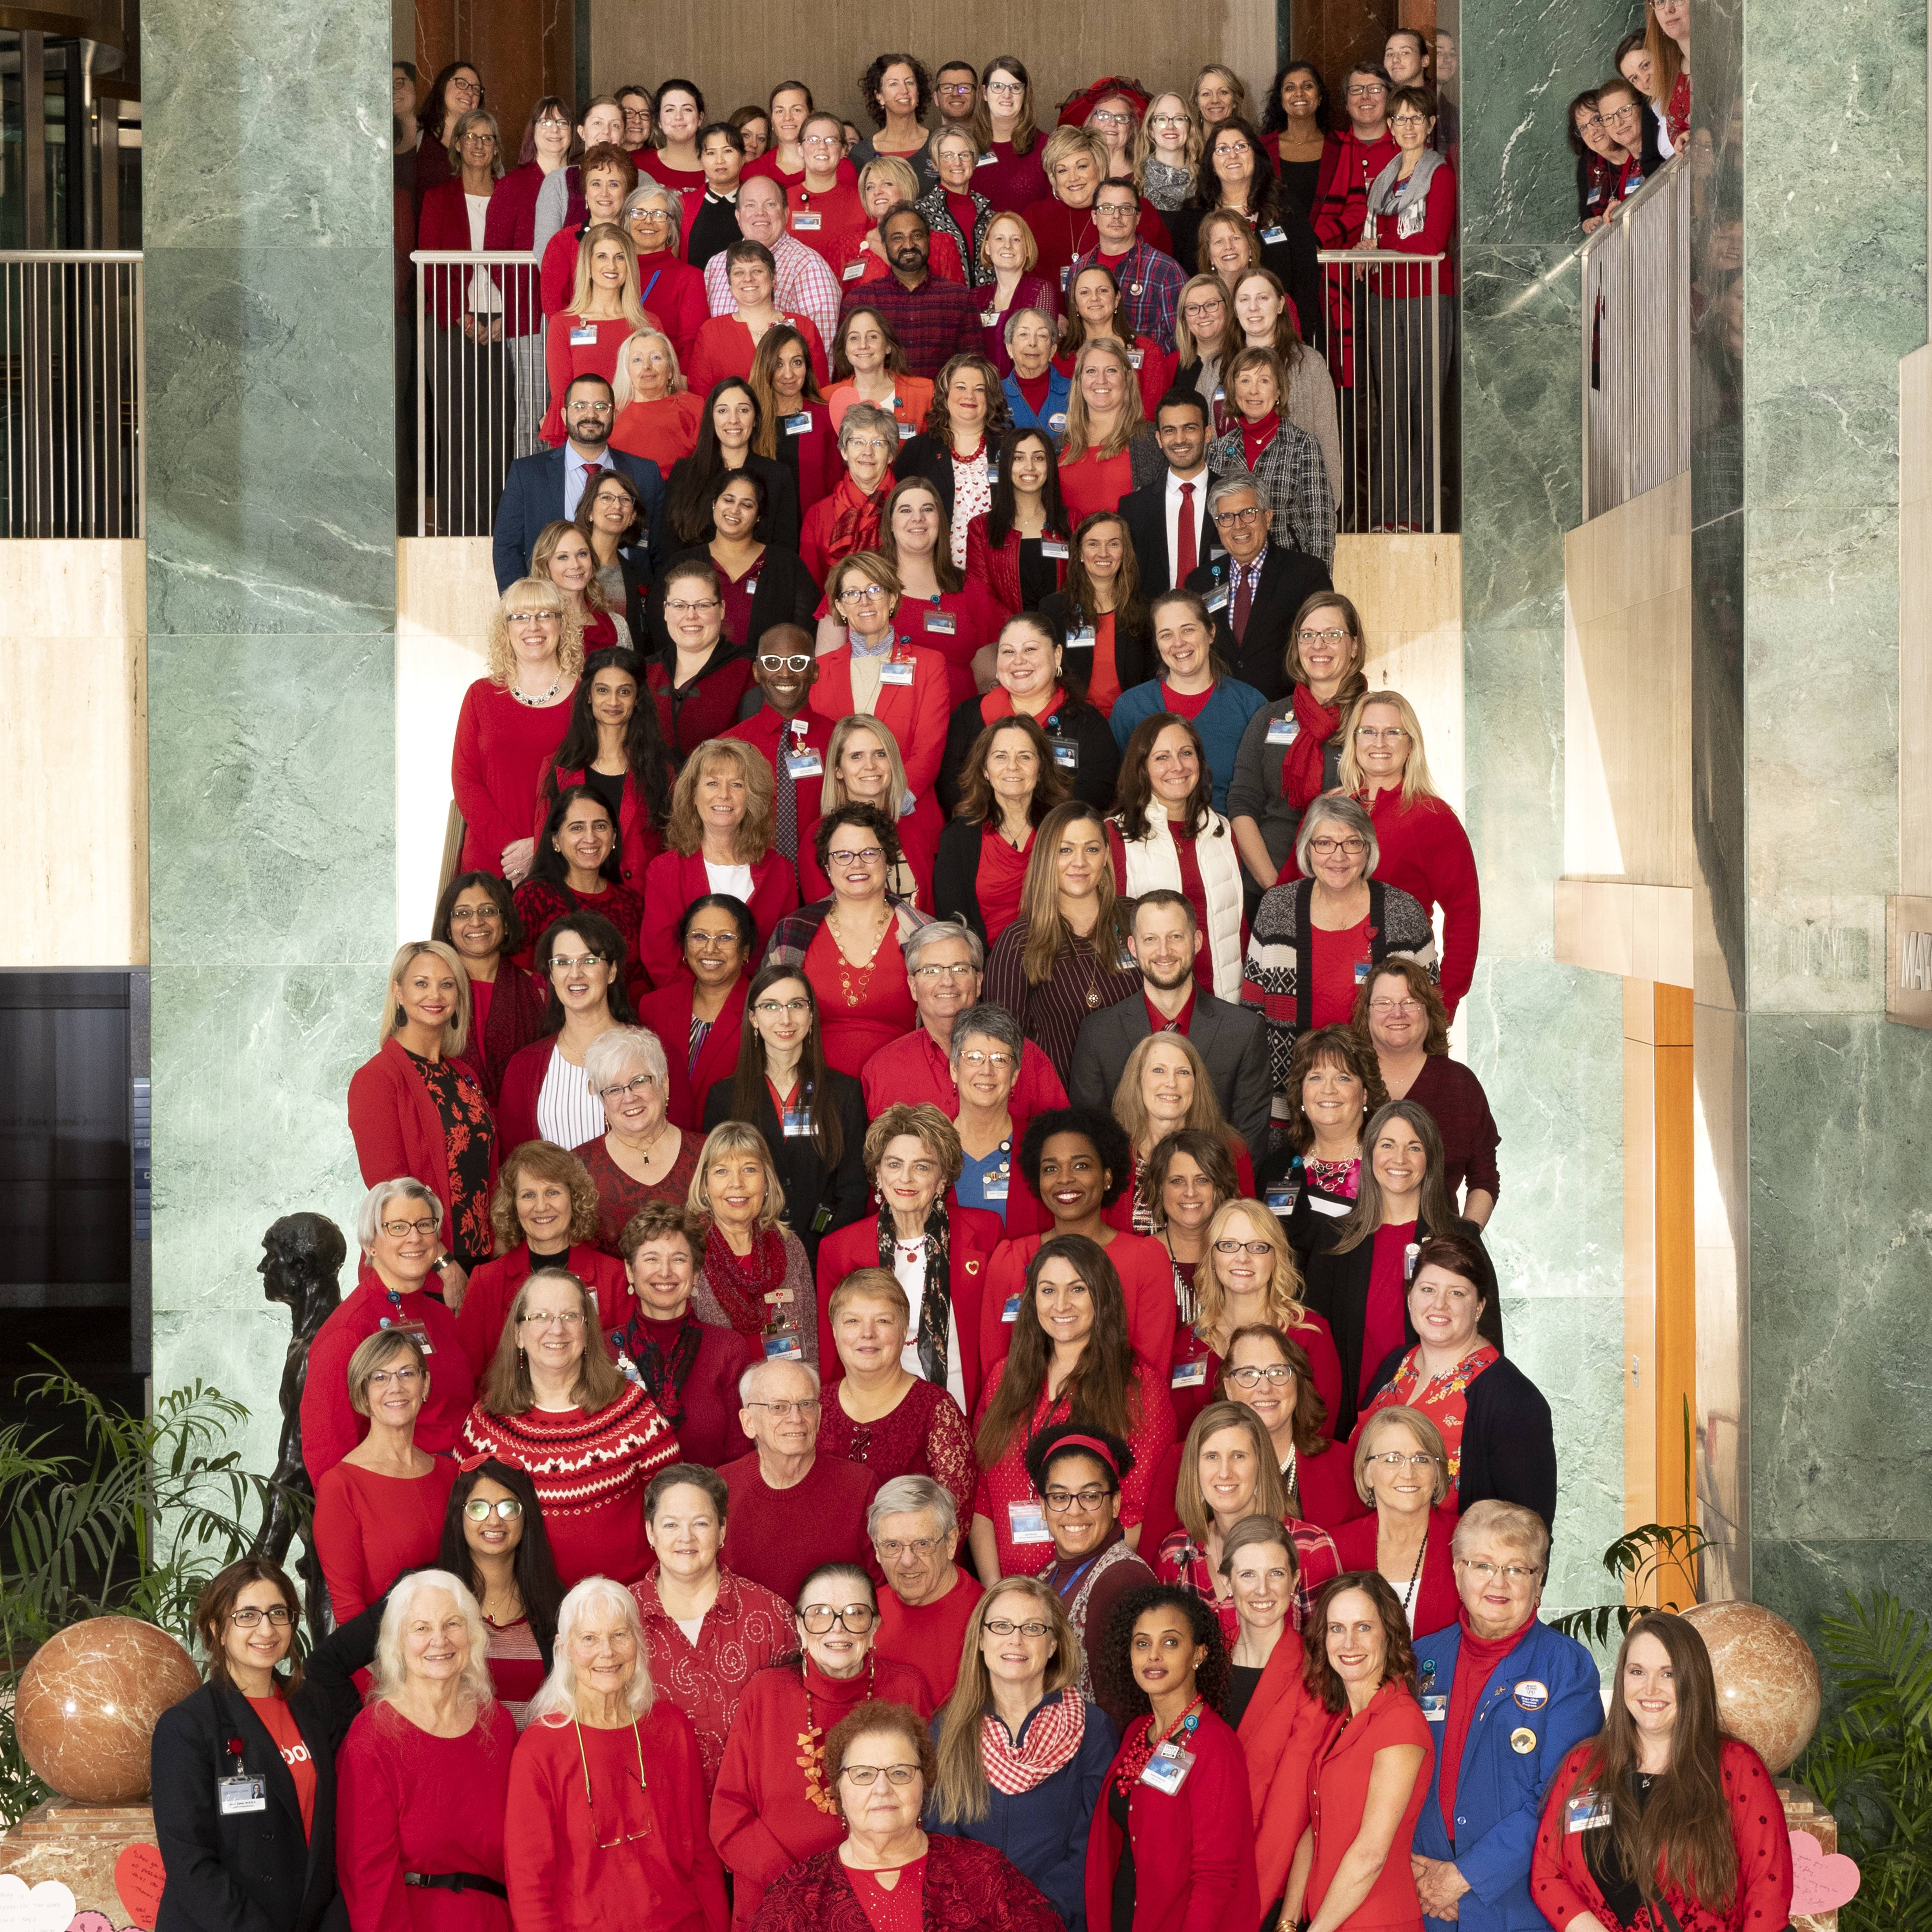 Employees at Mayo Clinic in Rochester line a stairway dressed in red.